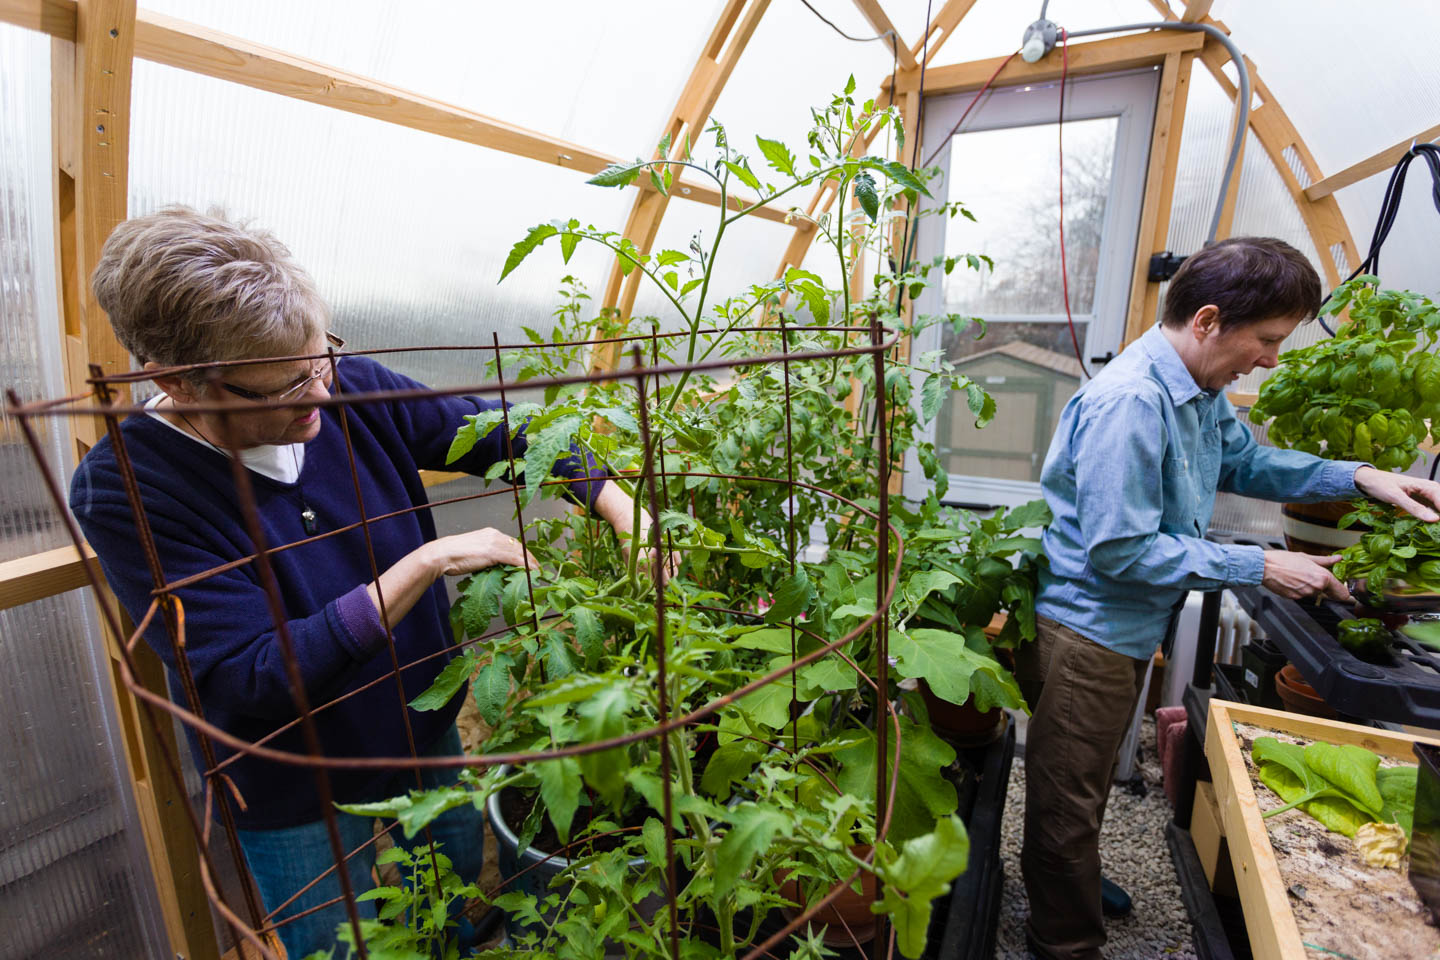 Kody Partridge and Laurie Wood work in their greenhouse